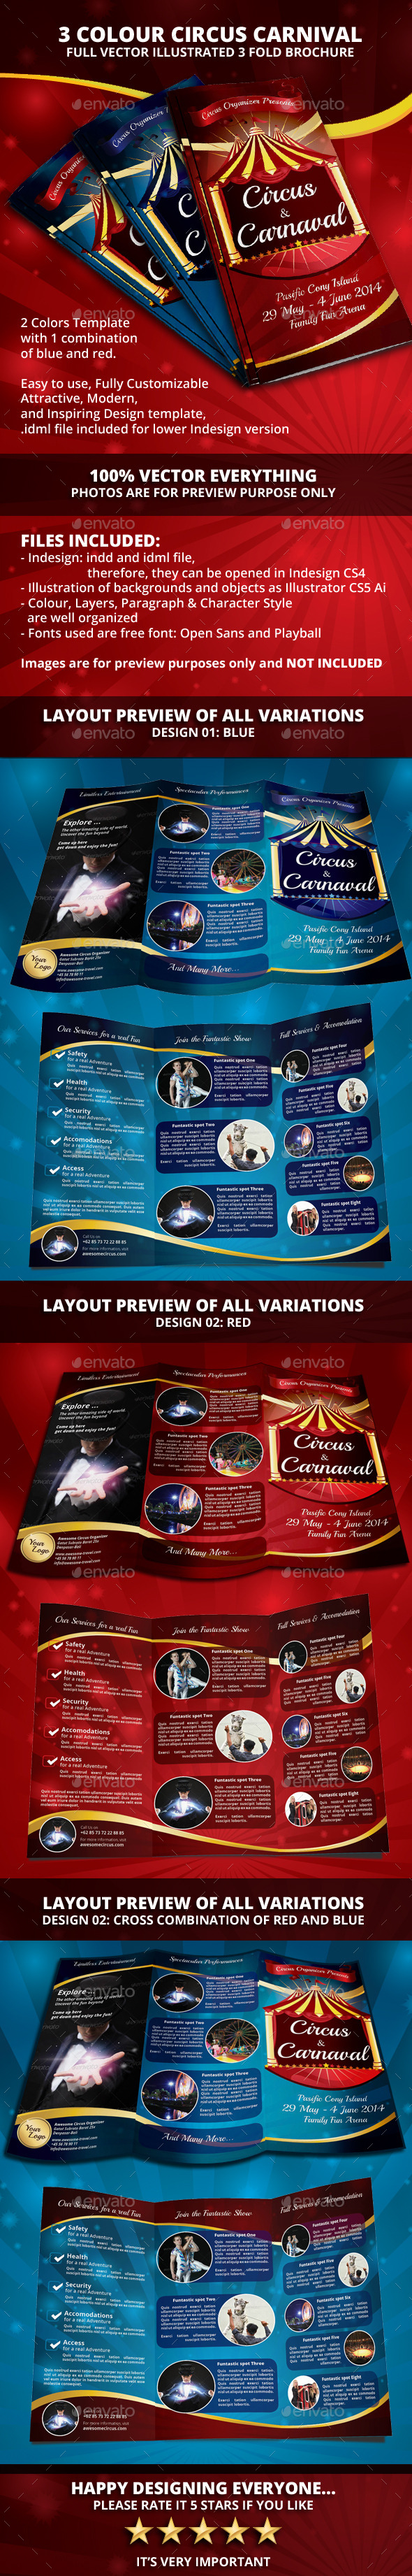 Circus Carnival 3 colour Trifold Brochure - Informational Brochures